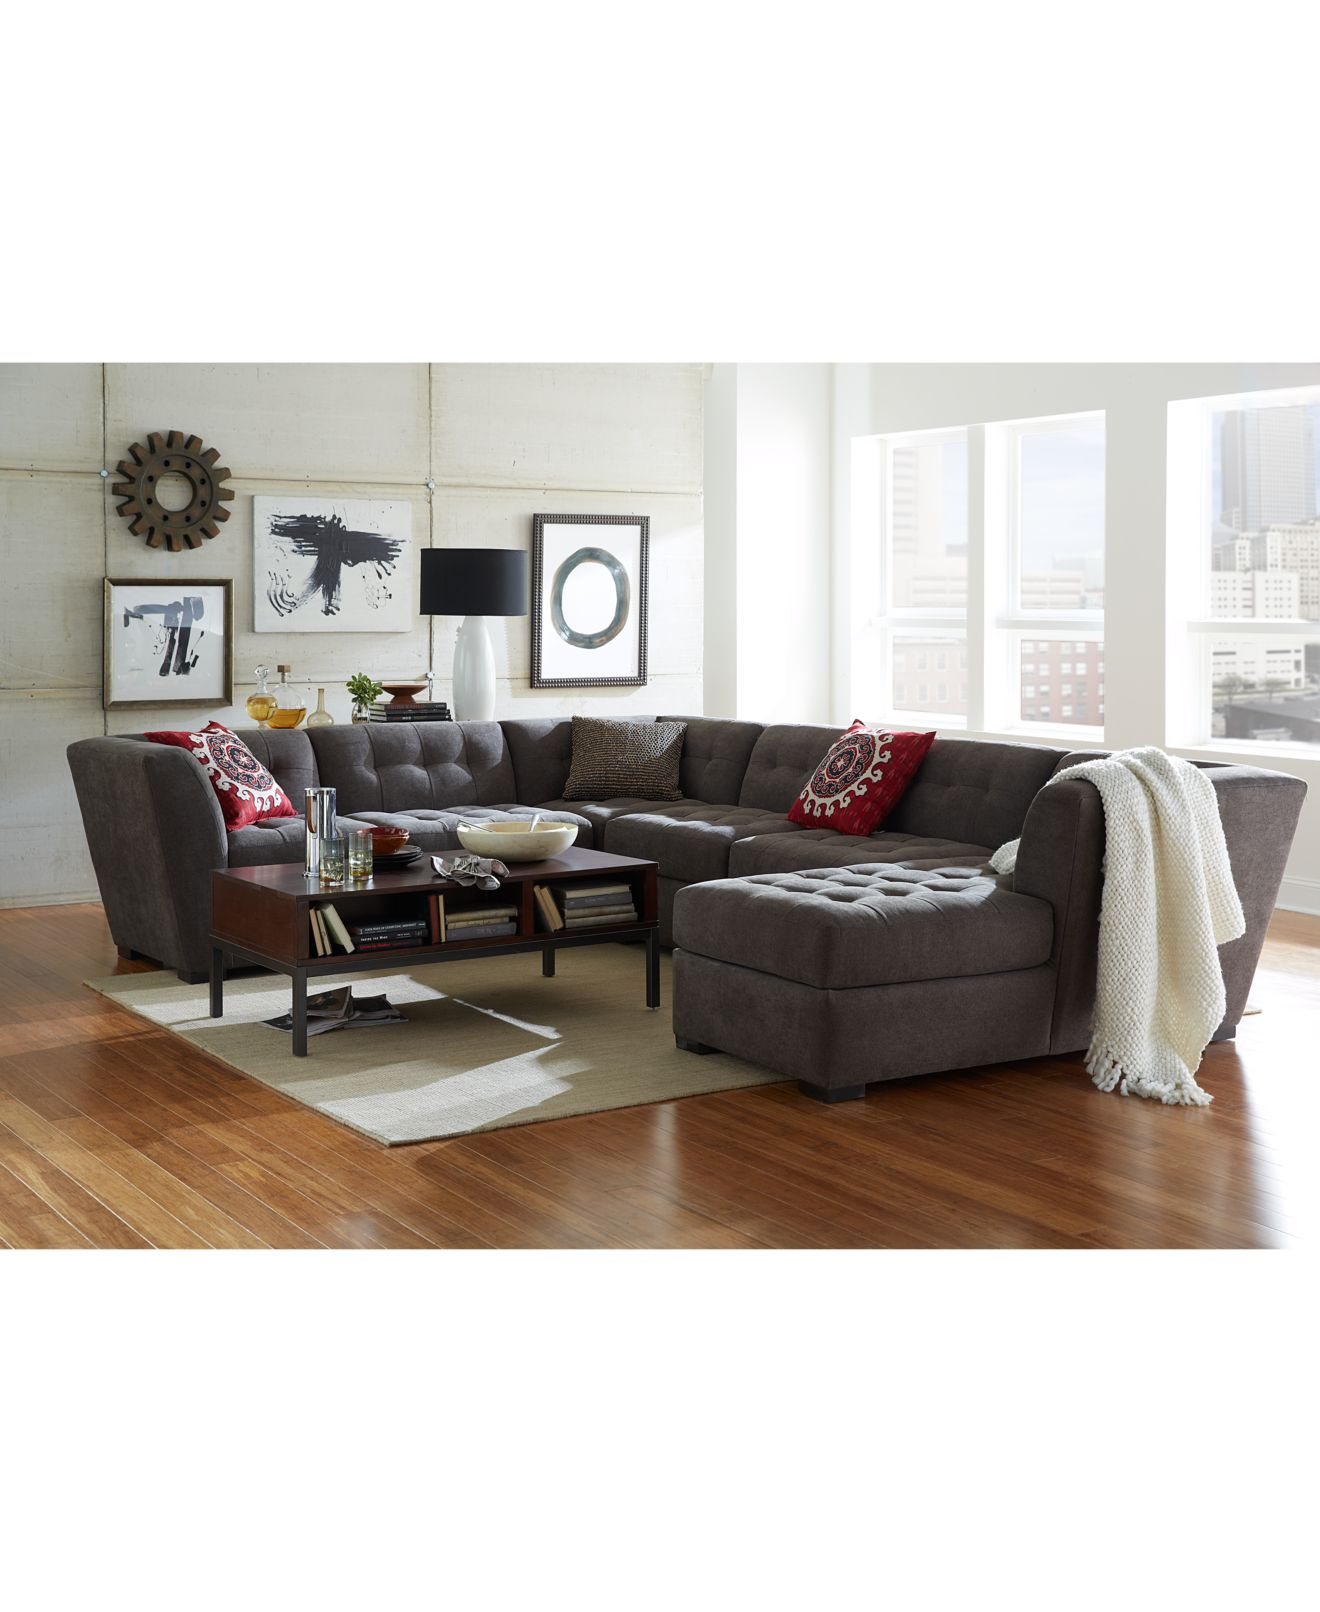 Roxanne fabric modular living room furniture collection only at macys